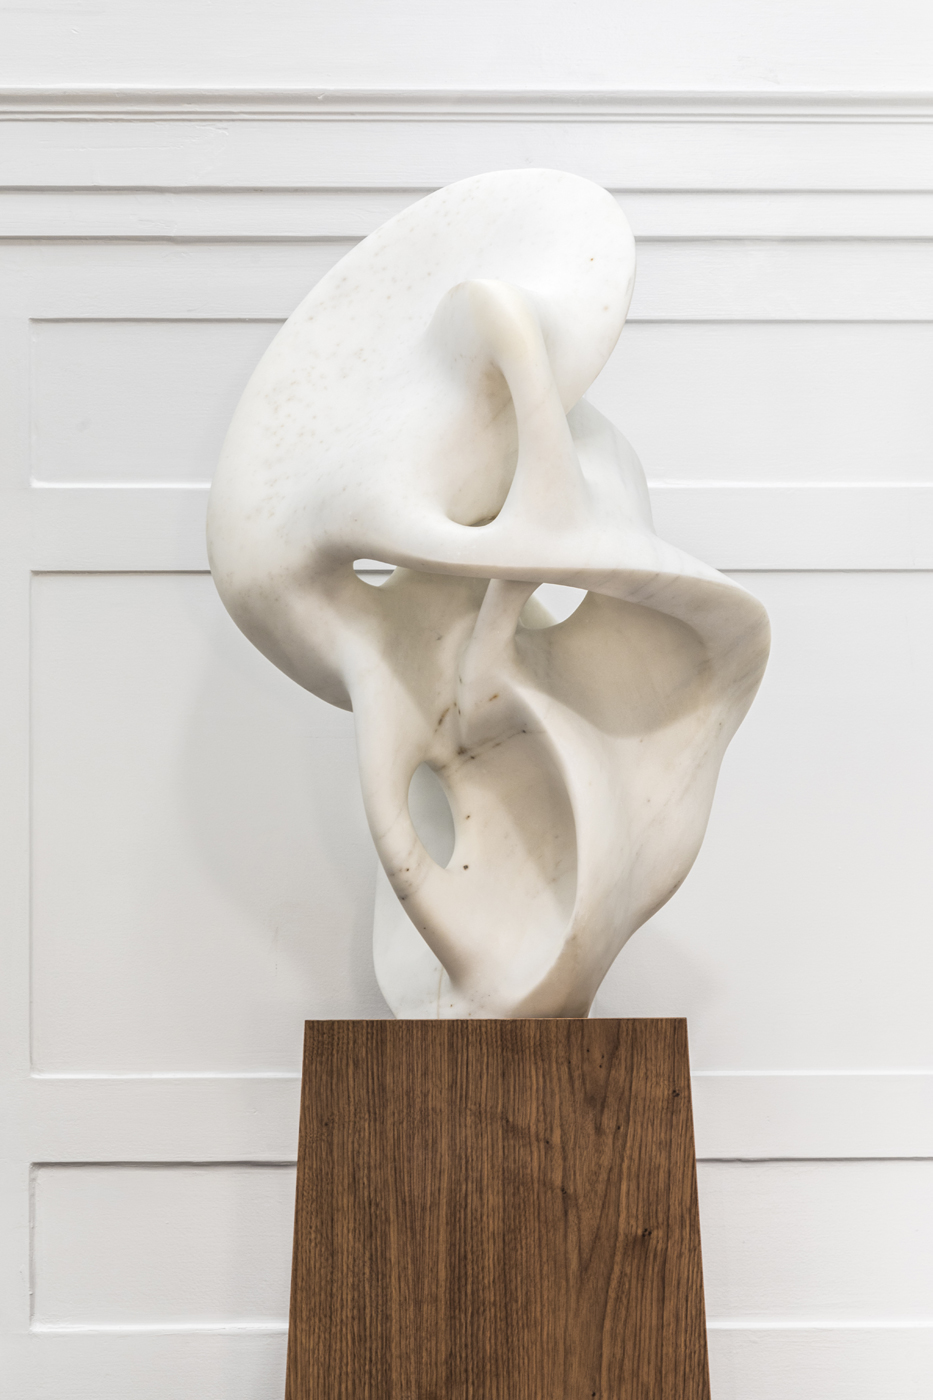 White marble abstract modern Saint Clair Cemin sculpture on tapered wooden pedestal | Savage Interior Design